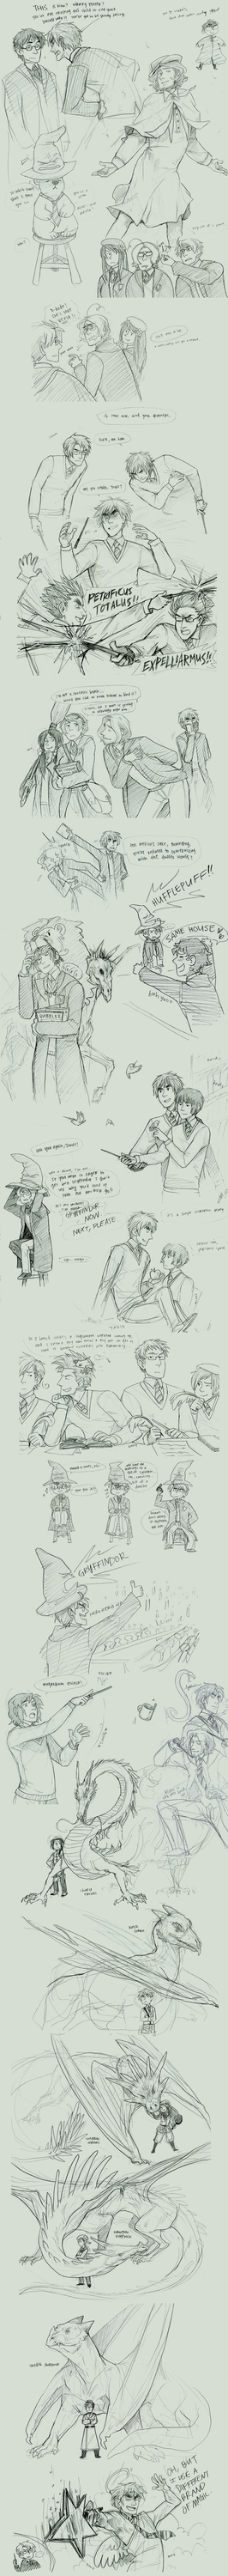 harry potter + the axis powers by Blue-Fox